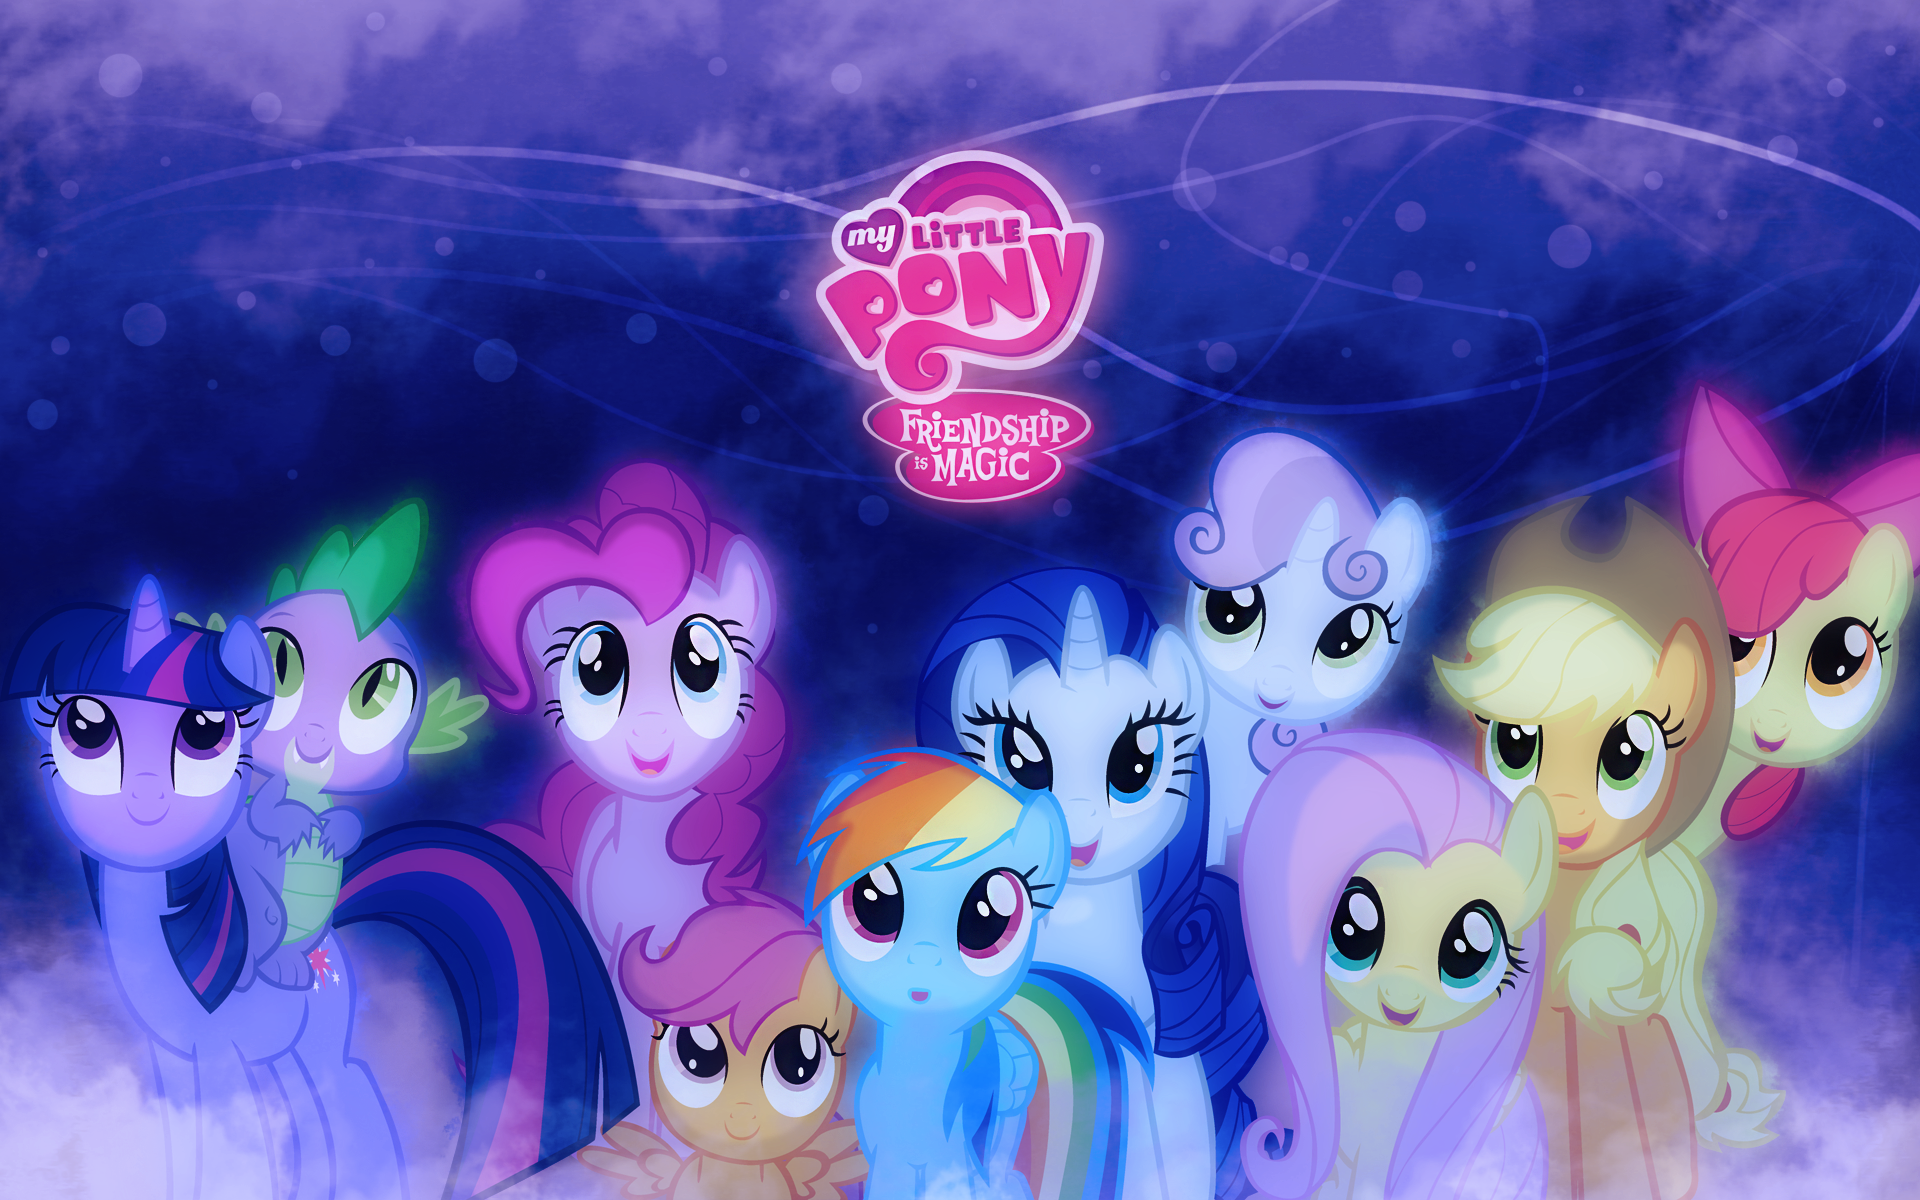 HQ 1920x1200 px Resolution My Little Pony #38740035 - BsnSCB.com